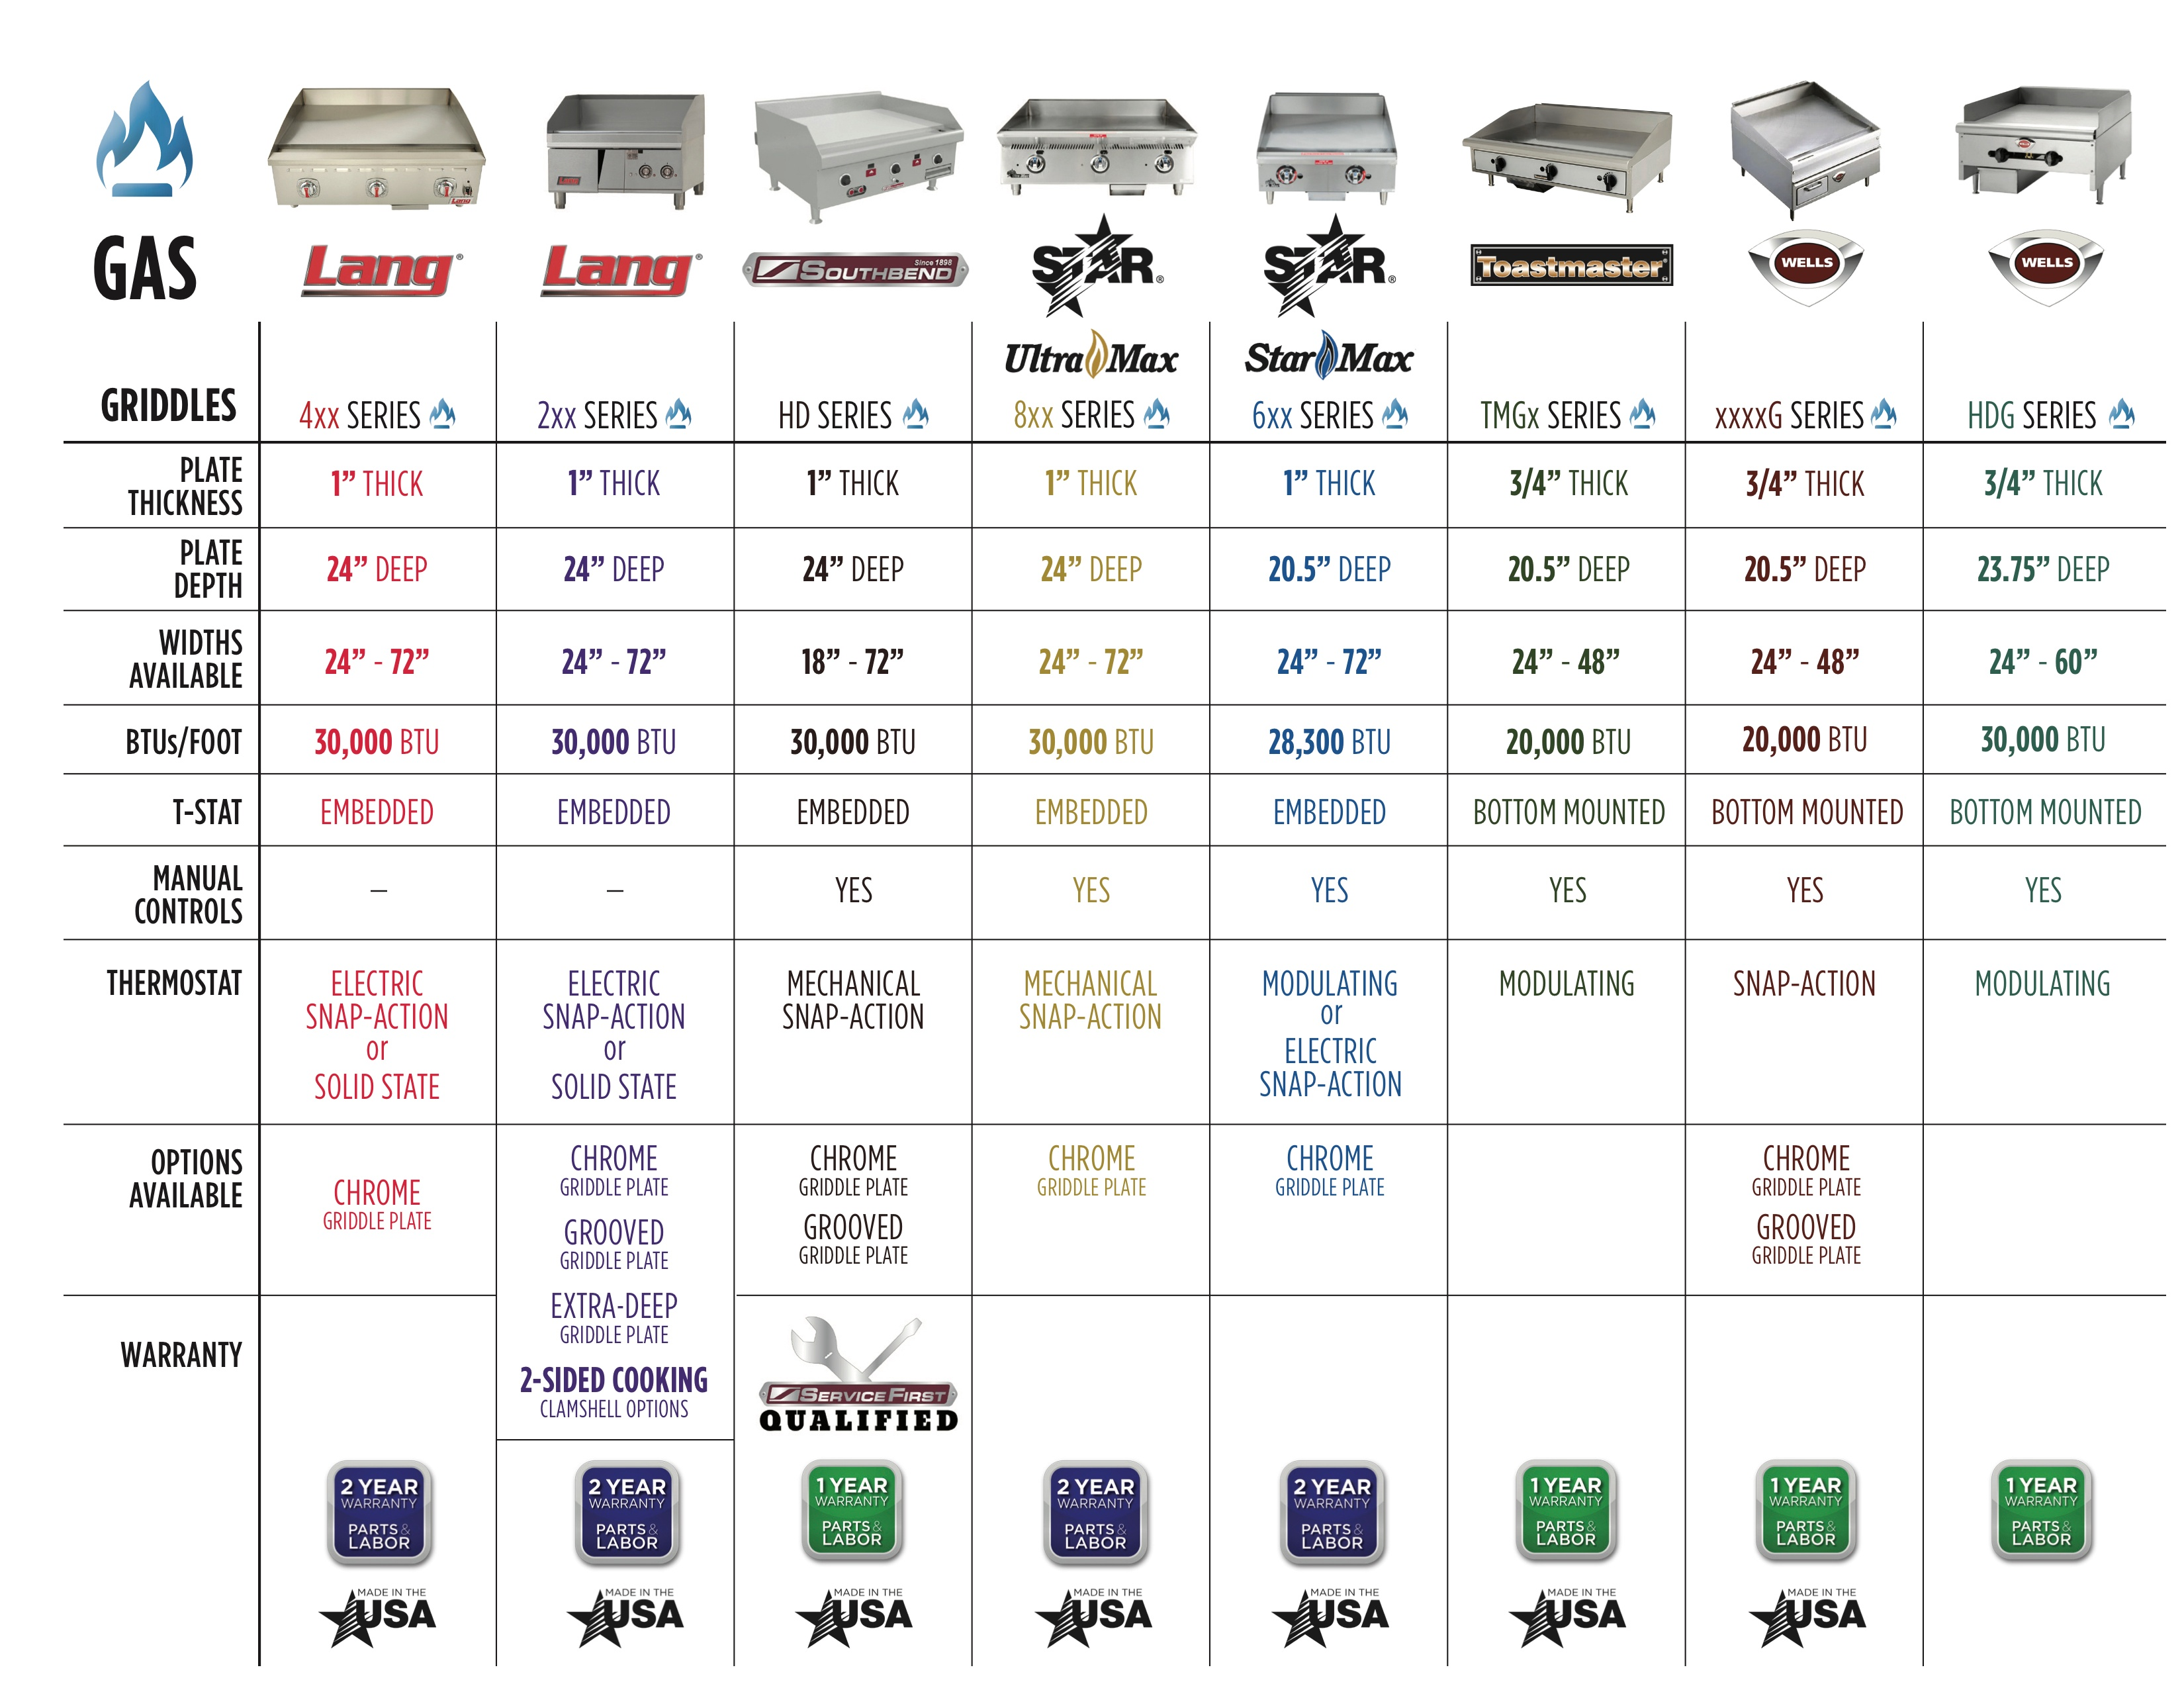 Kitchen Countertop Comparison Chart Countertop Griddle Comparison Charts From High Sabatino